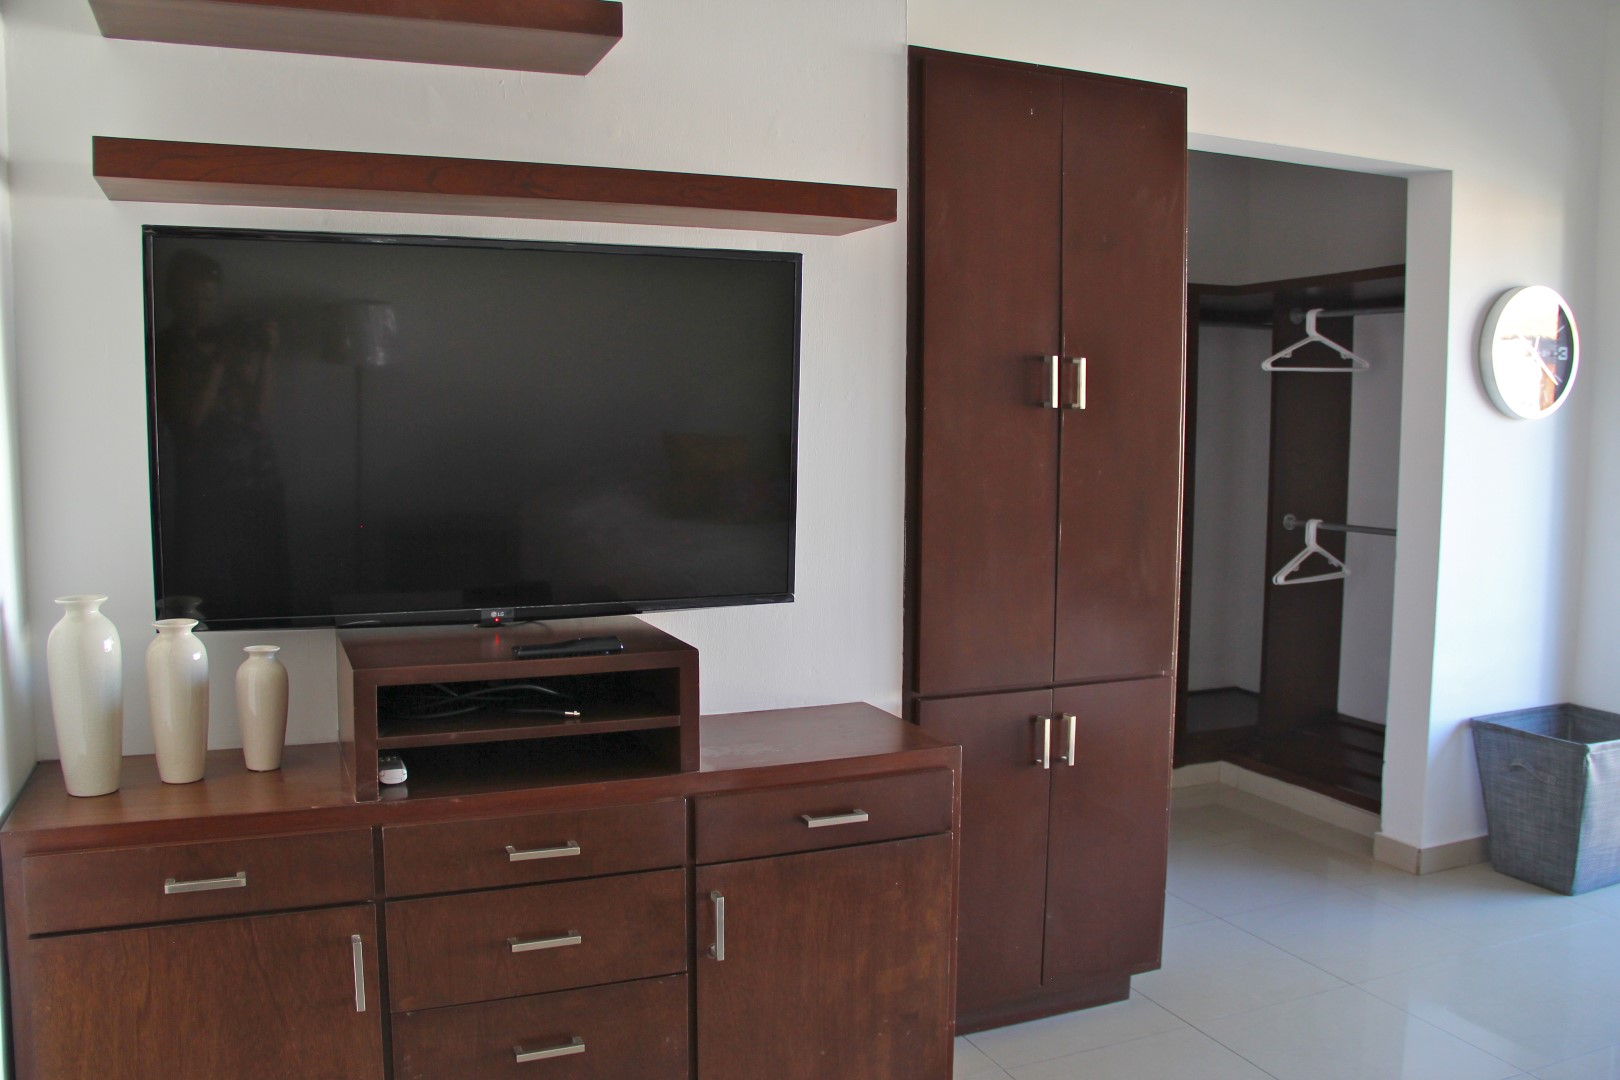 Flatscreen TV in master bedroom